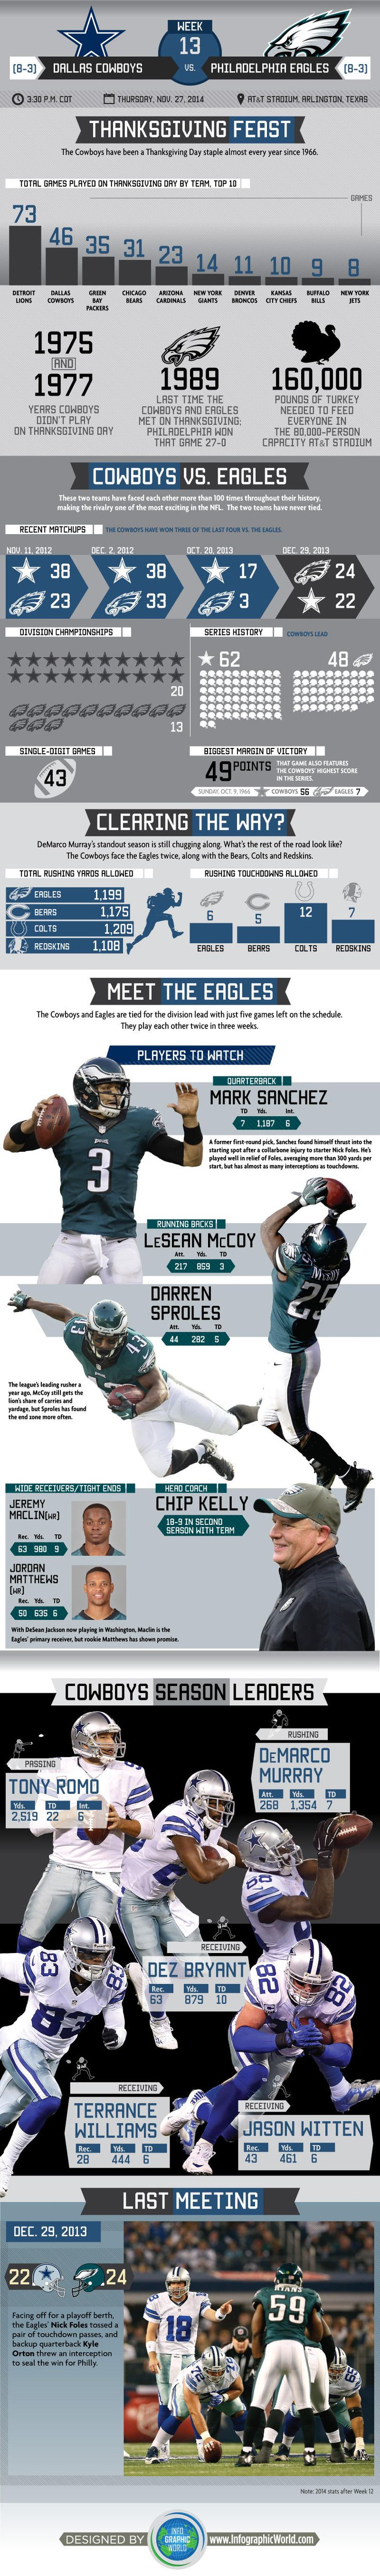 Infographic: Visual Breakdown Of Thanksgiving Stats & Eagles Leaders | Dallas Cowboys